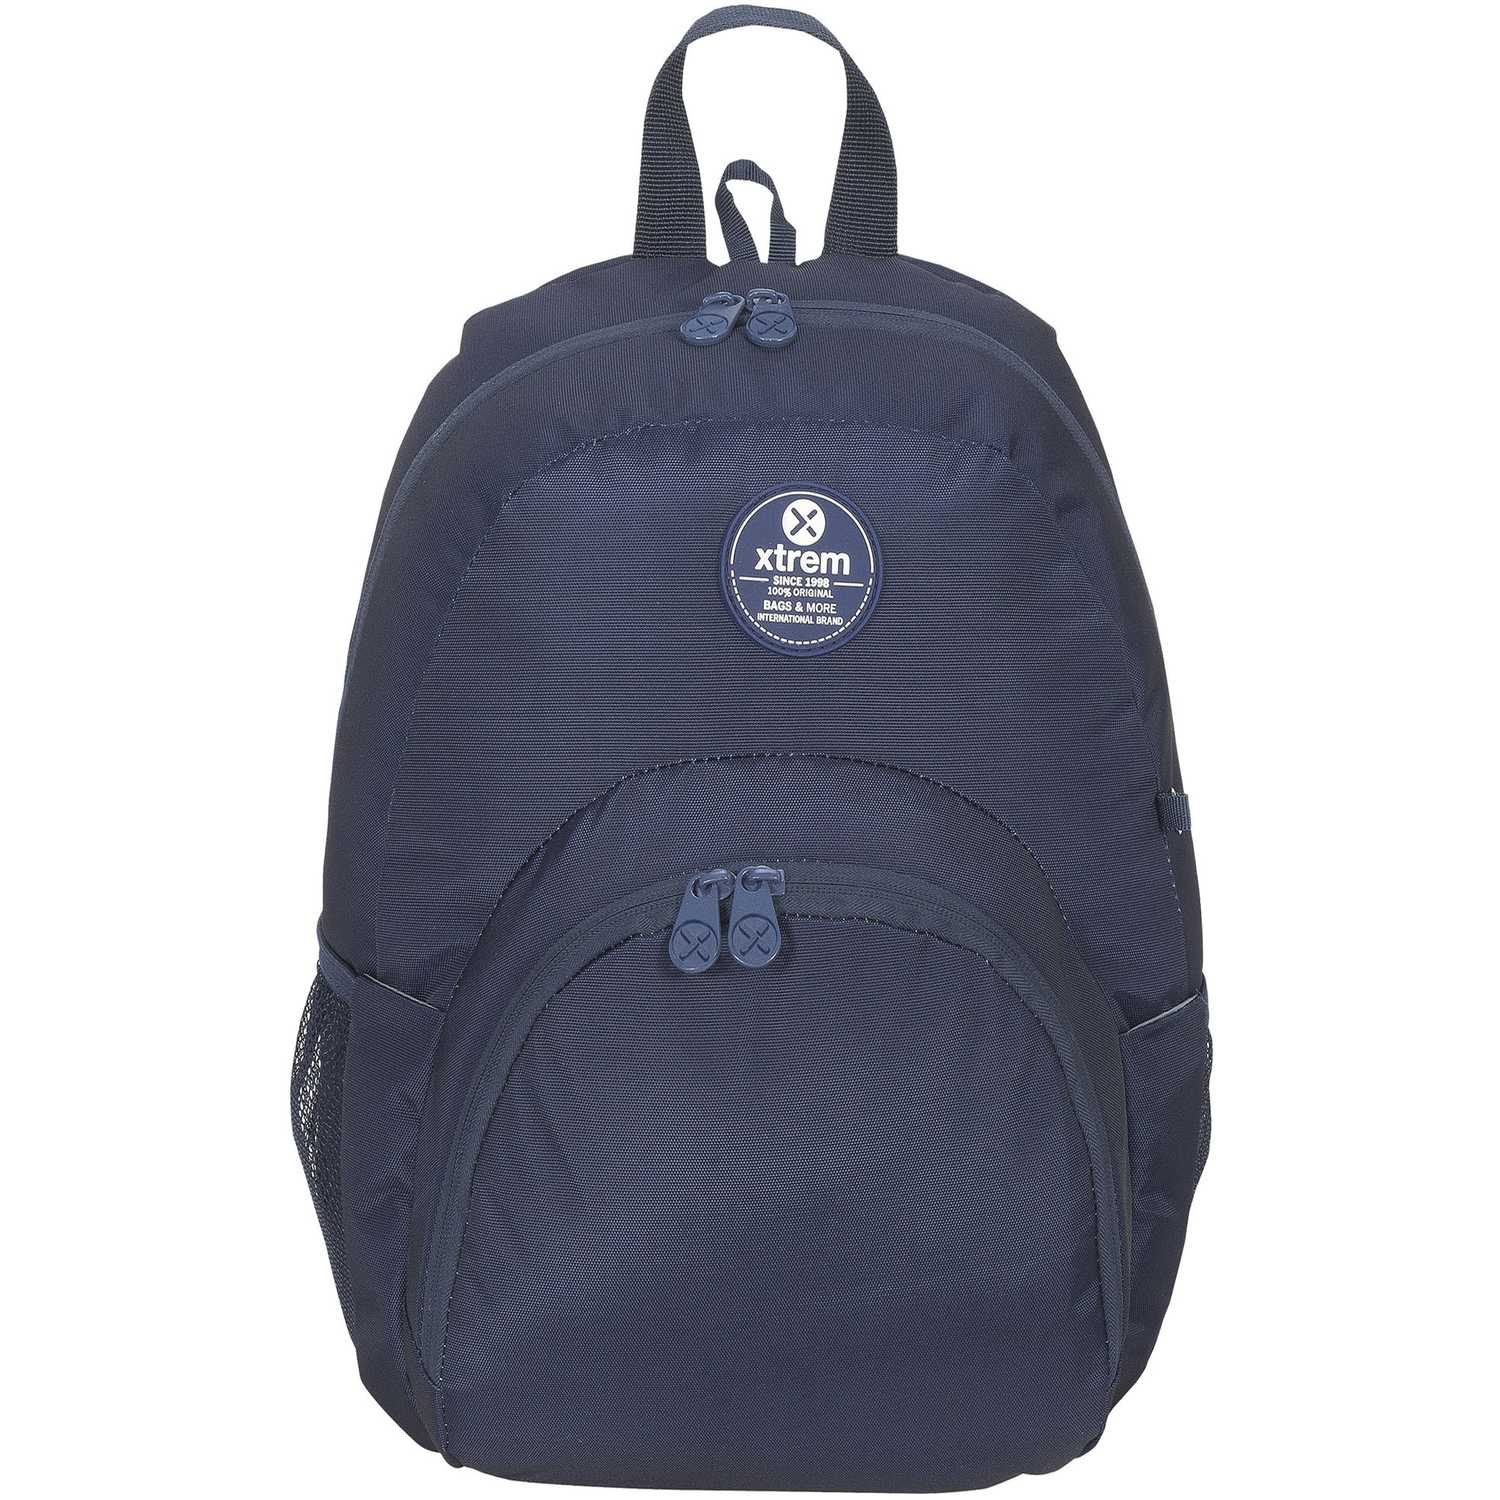 Mochila de Niña Xtrem Navy backpack navy power 819